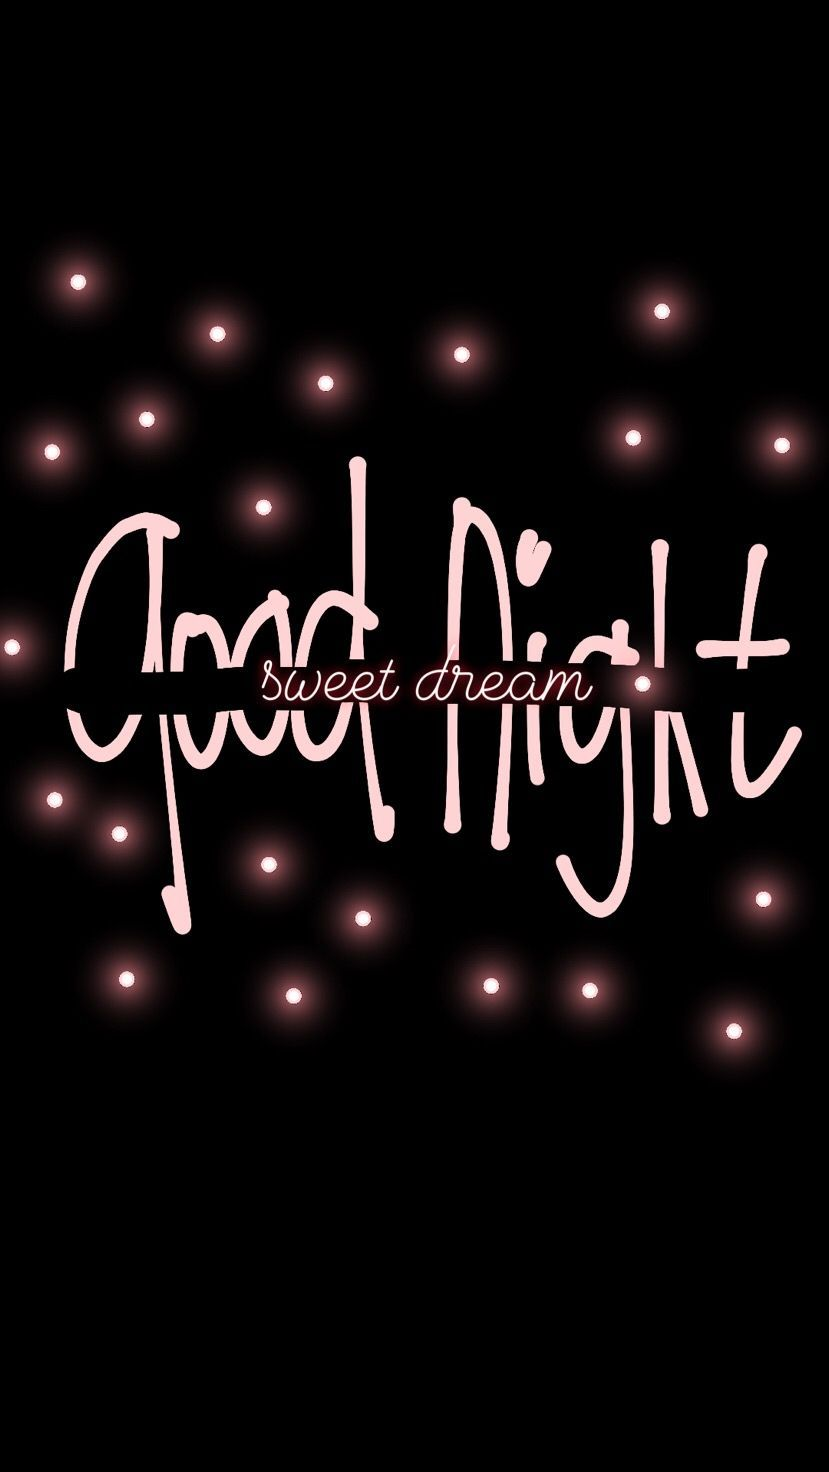 Good Night Roundsnapideas Instagramstory Aesthetic Neon In 2021 Good Night Story Creative Instagram Stories Instagram Story Ideas